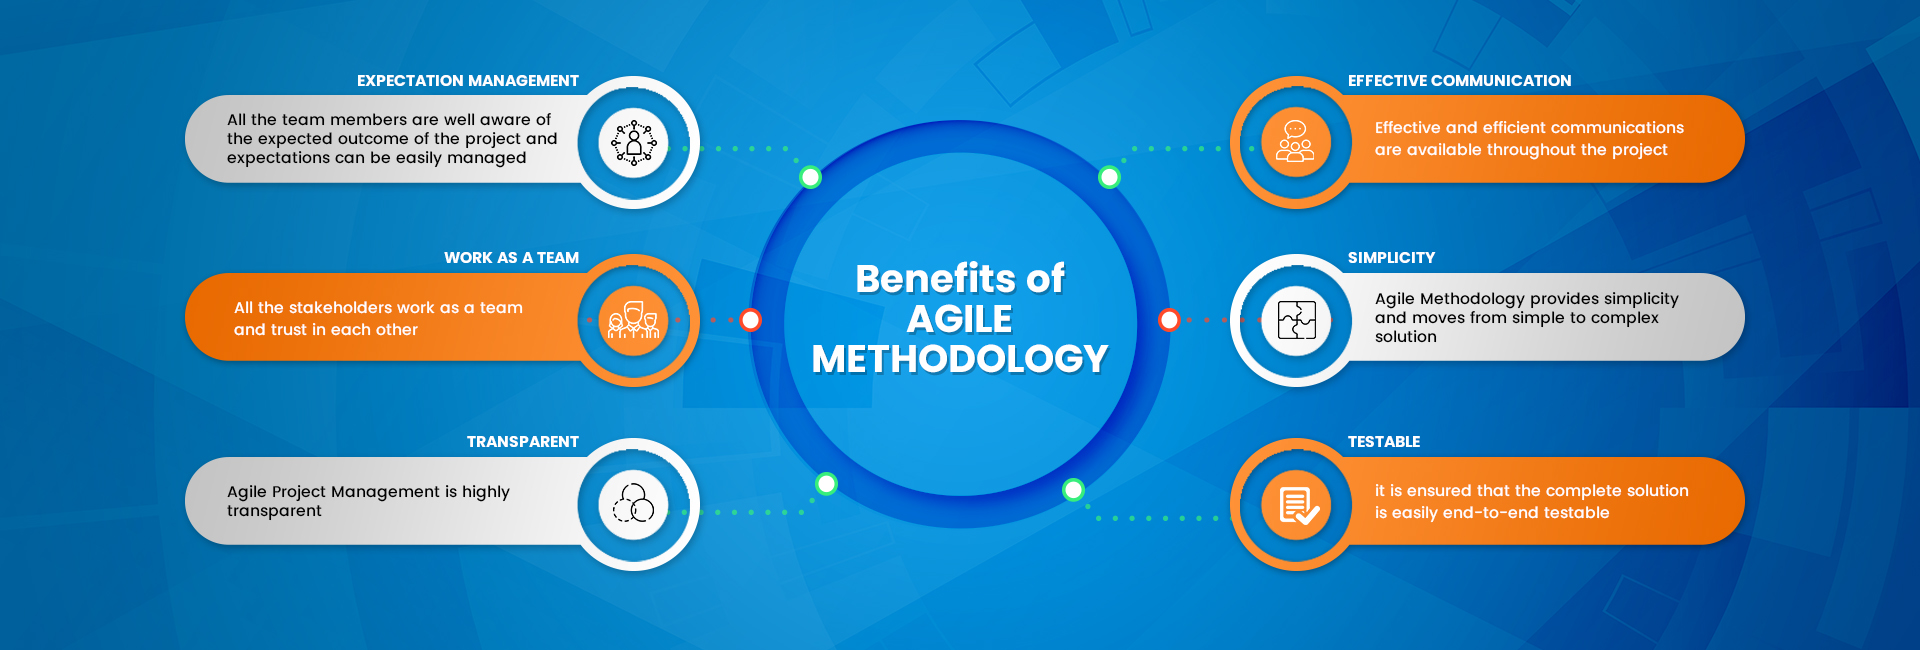 7 Agile Methodology Benefits For Your Project Management